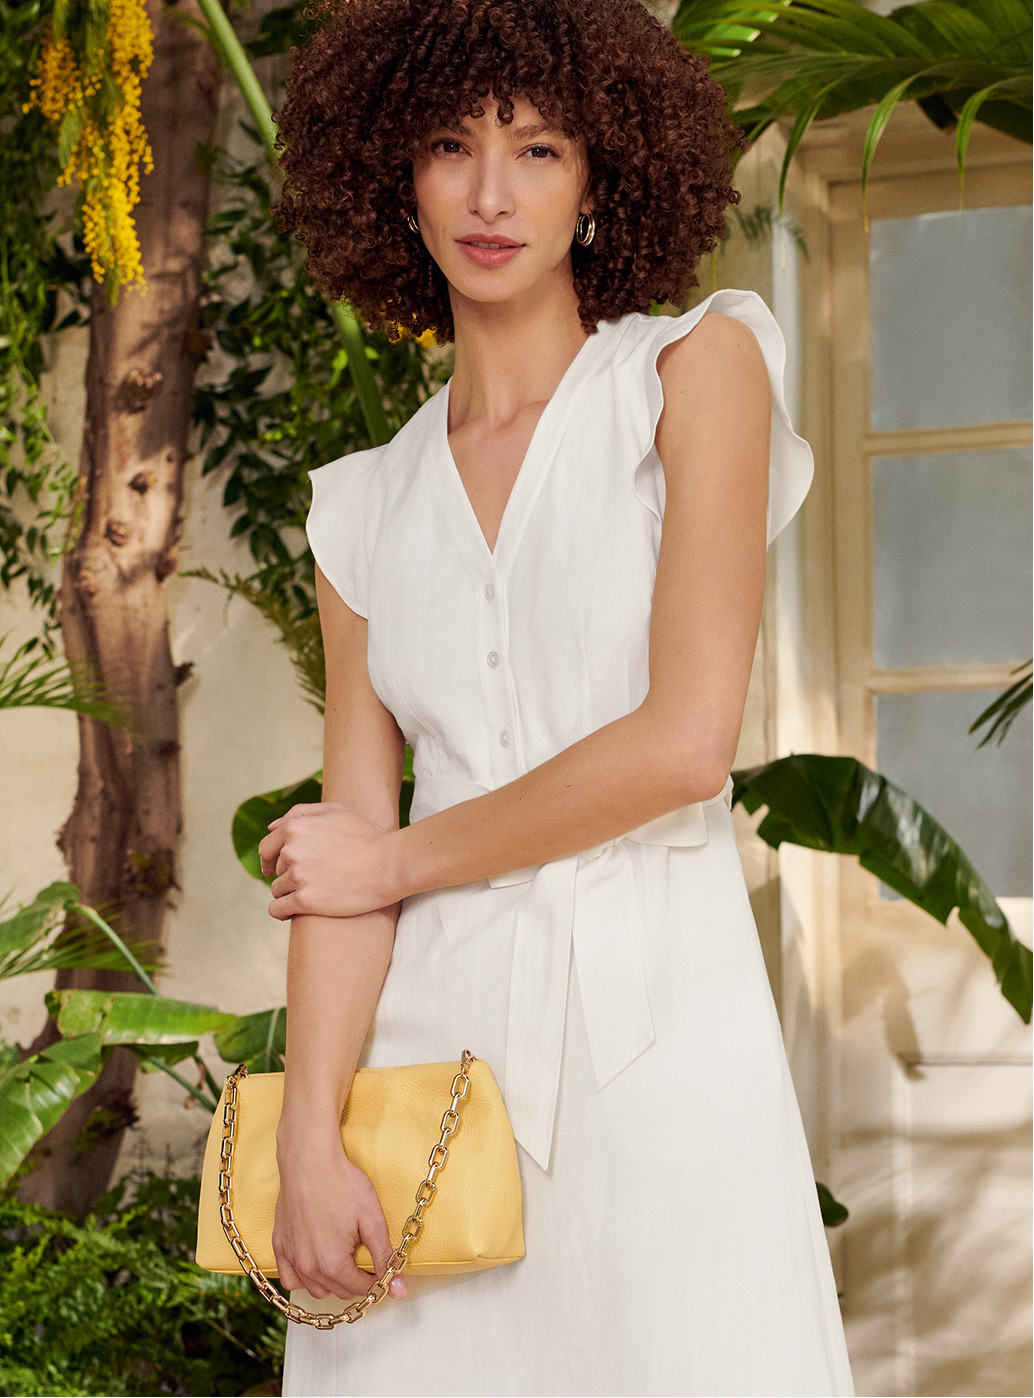 Model wearing a white dress holds a yellow clutch bag.